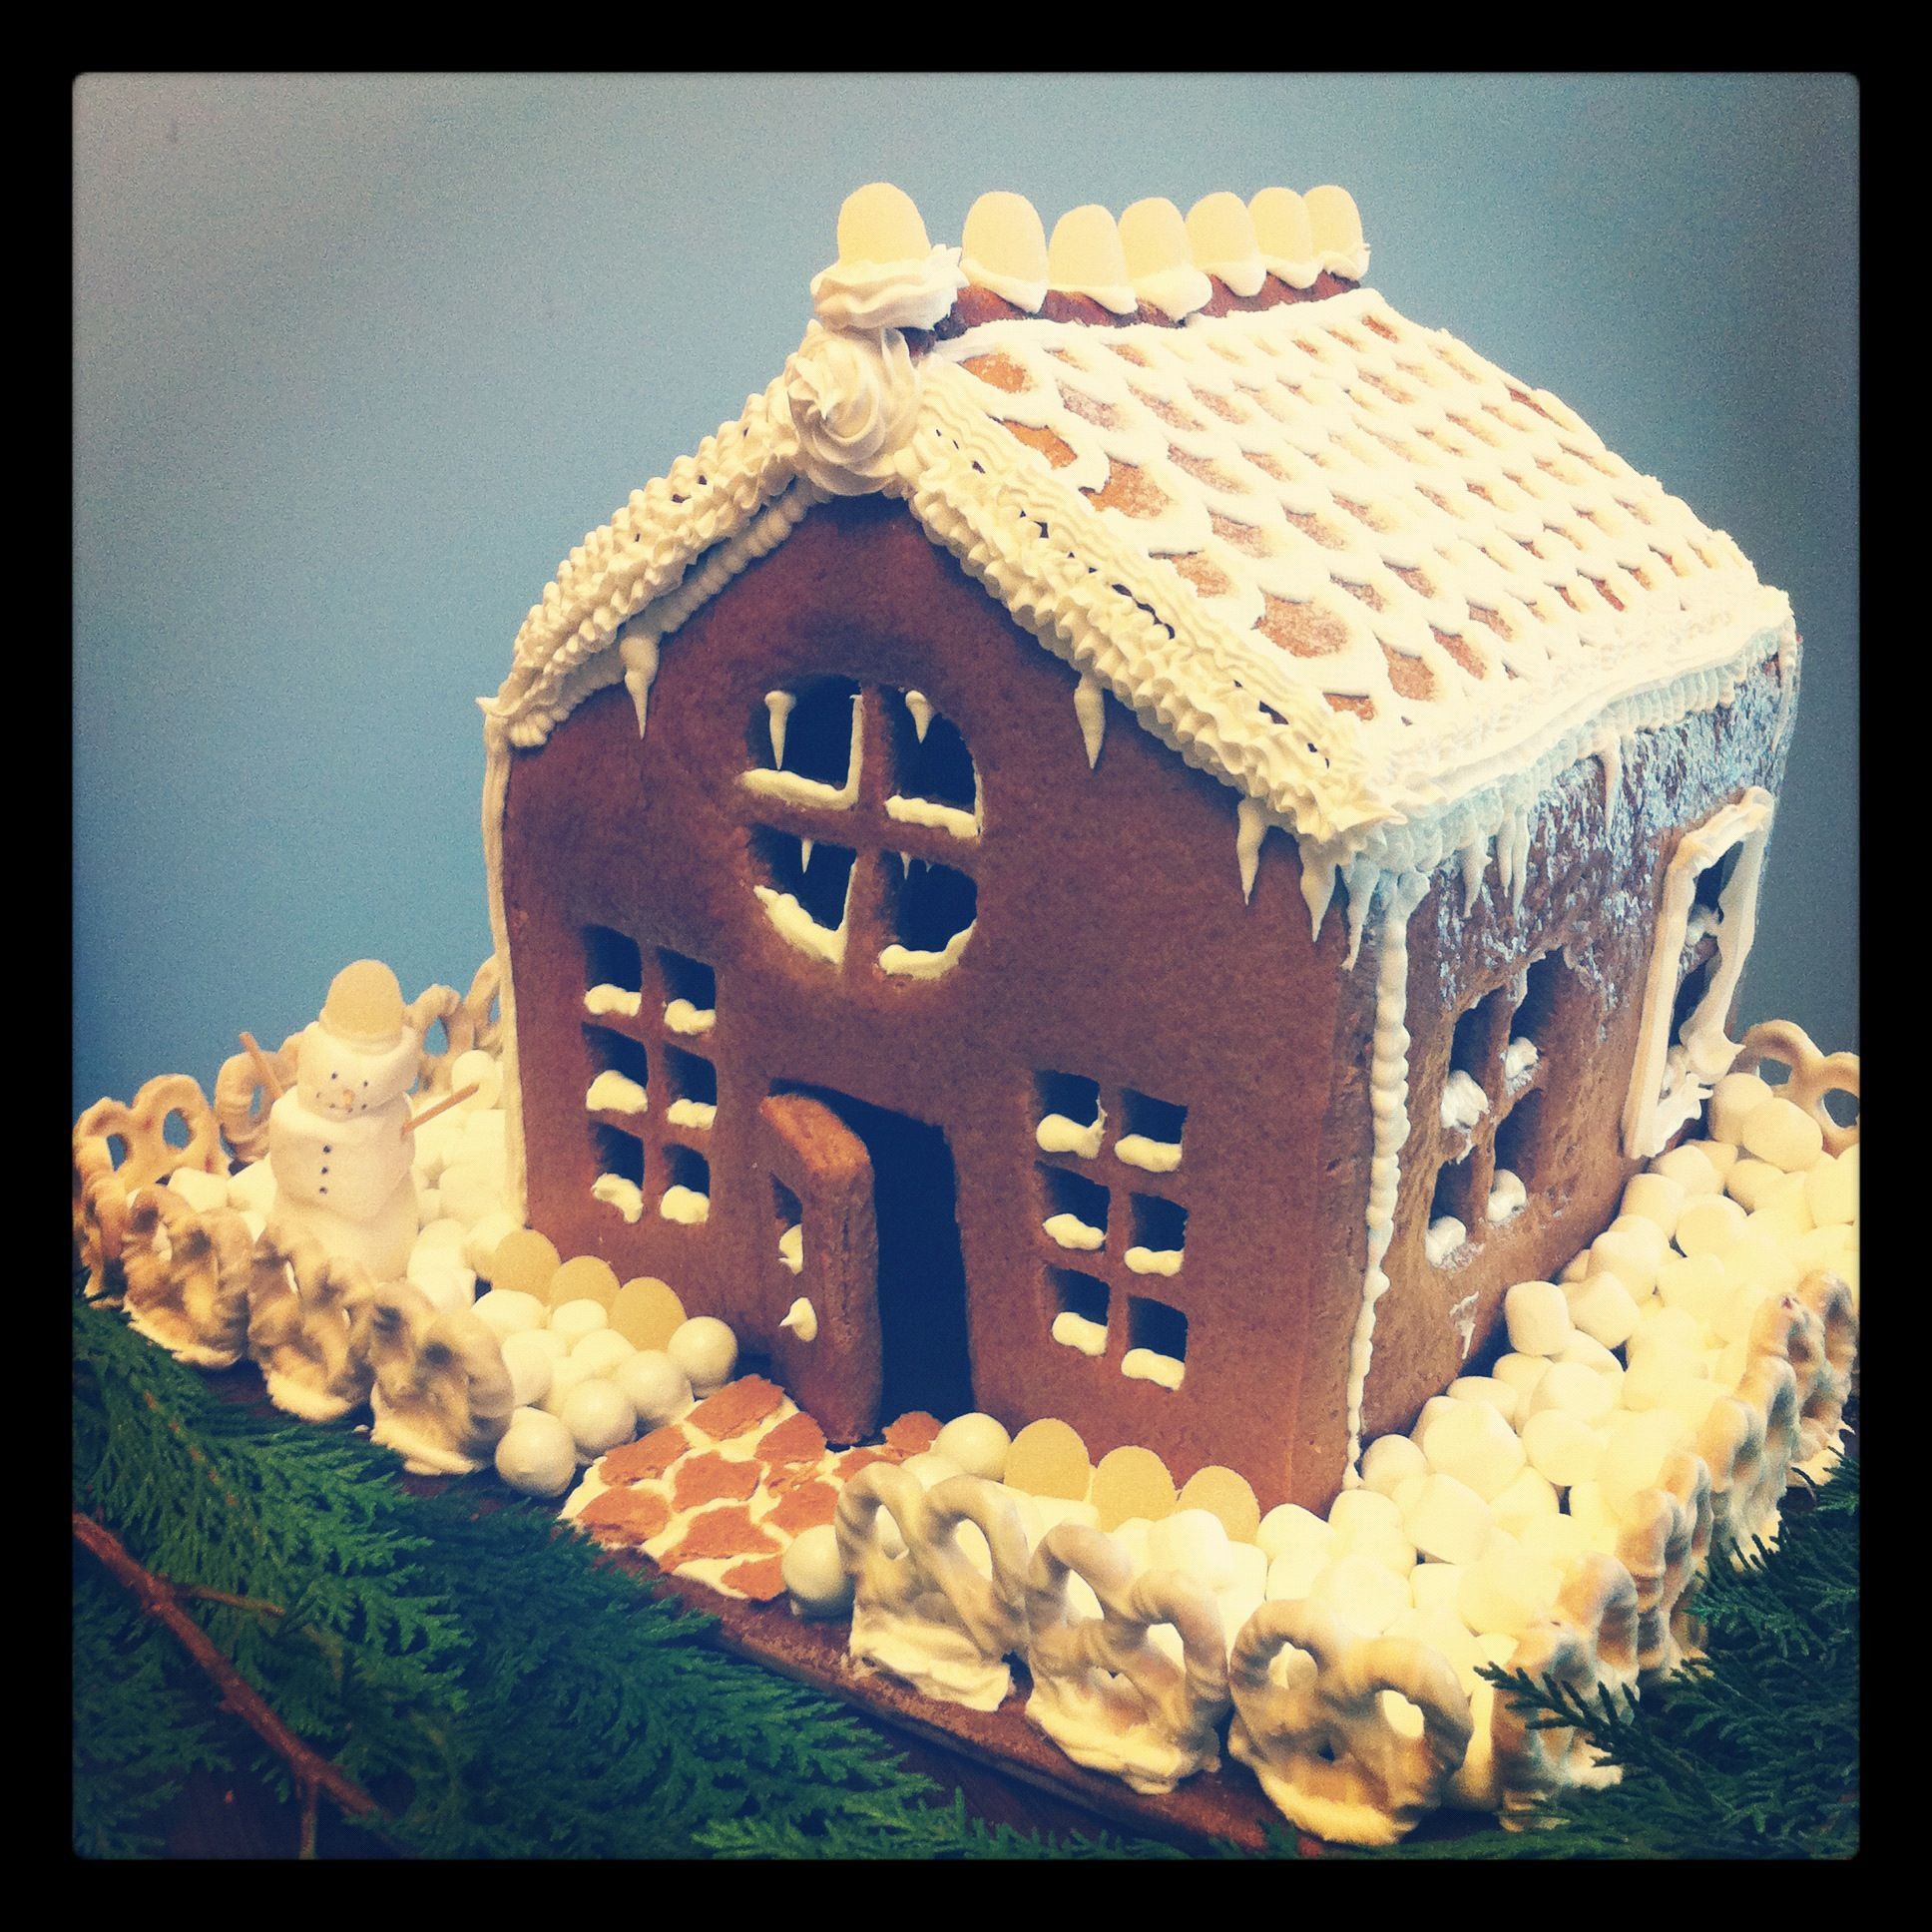 Gingerbread houses are a necessary craft at Christmas!